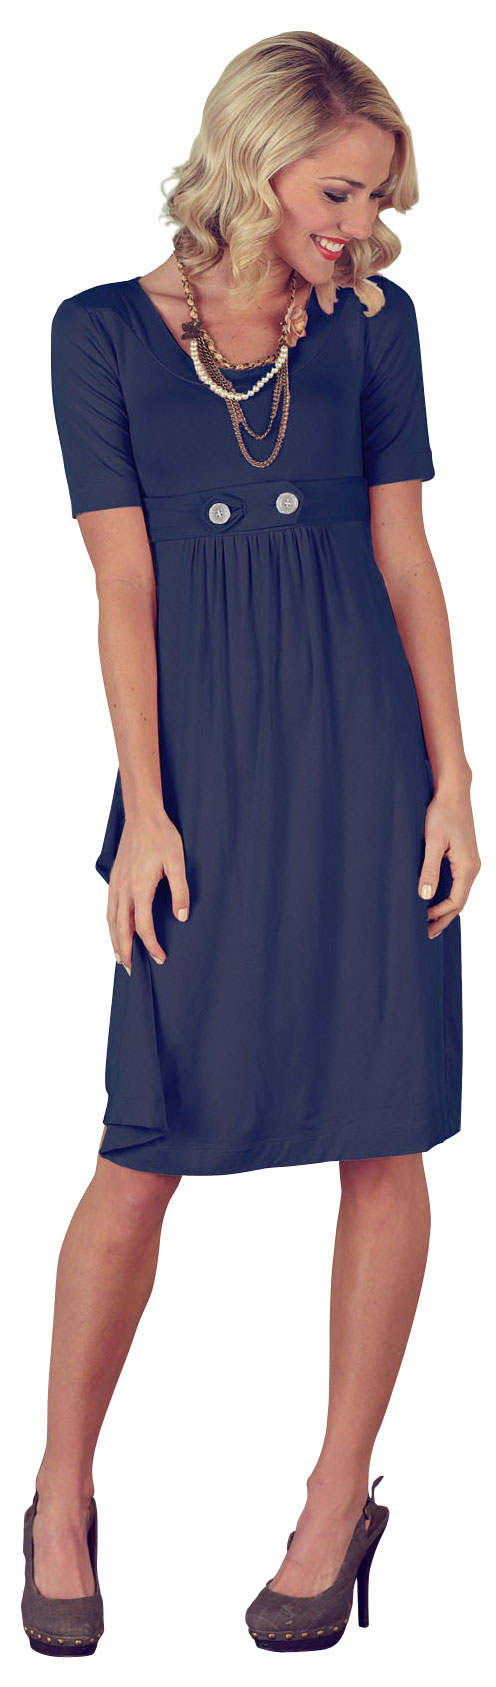 Modest Dresses in Navy